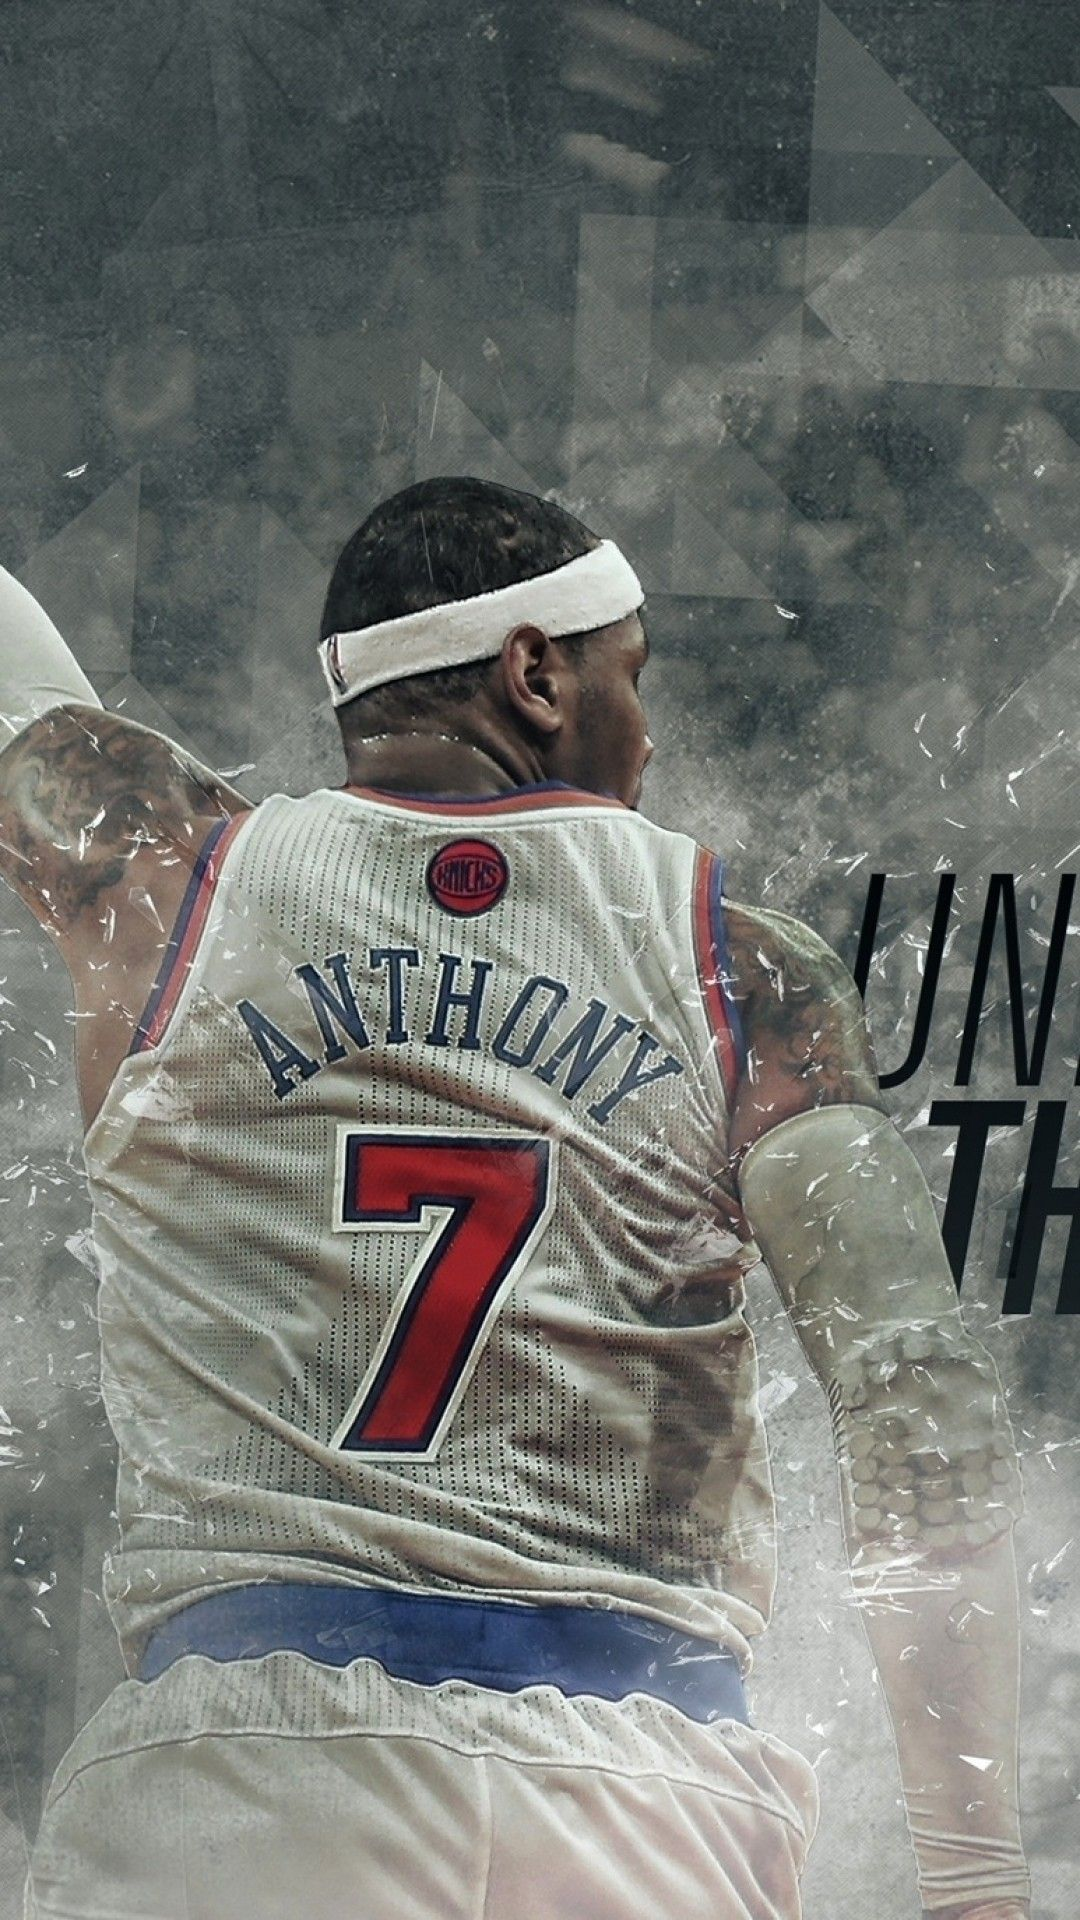 New York Knicks wallpaper for android